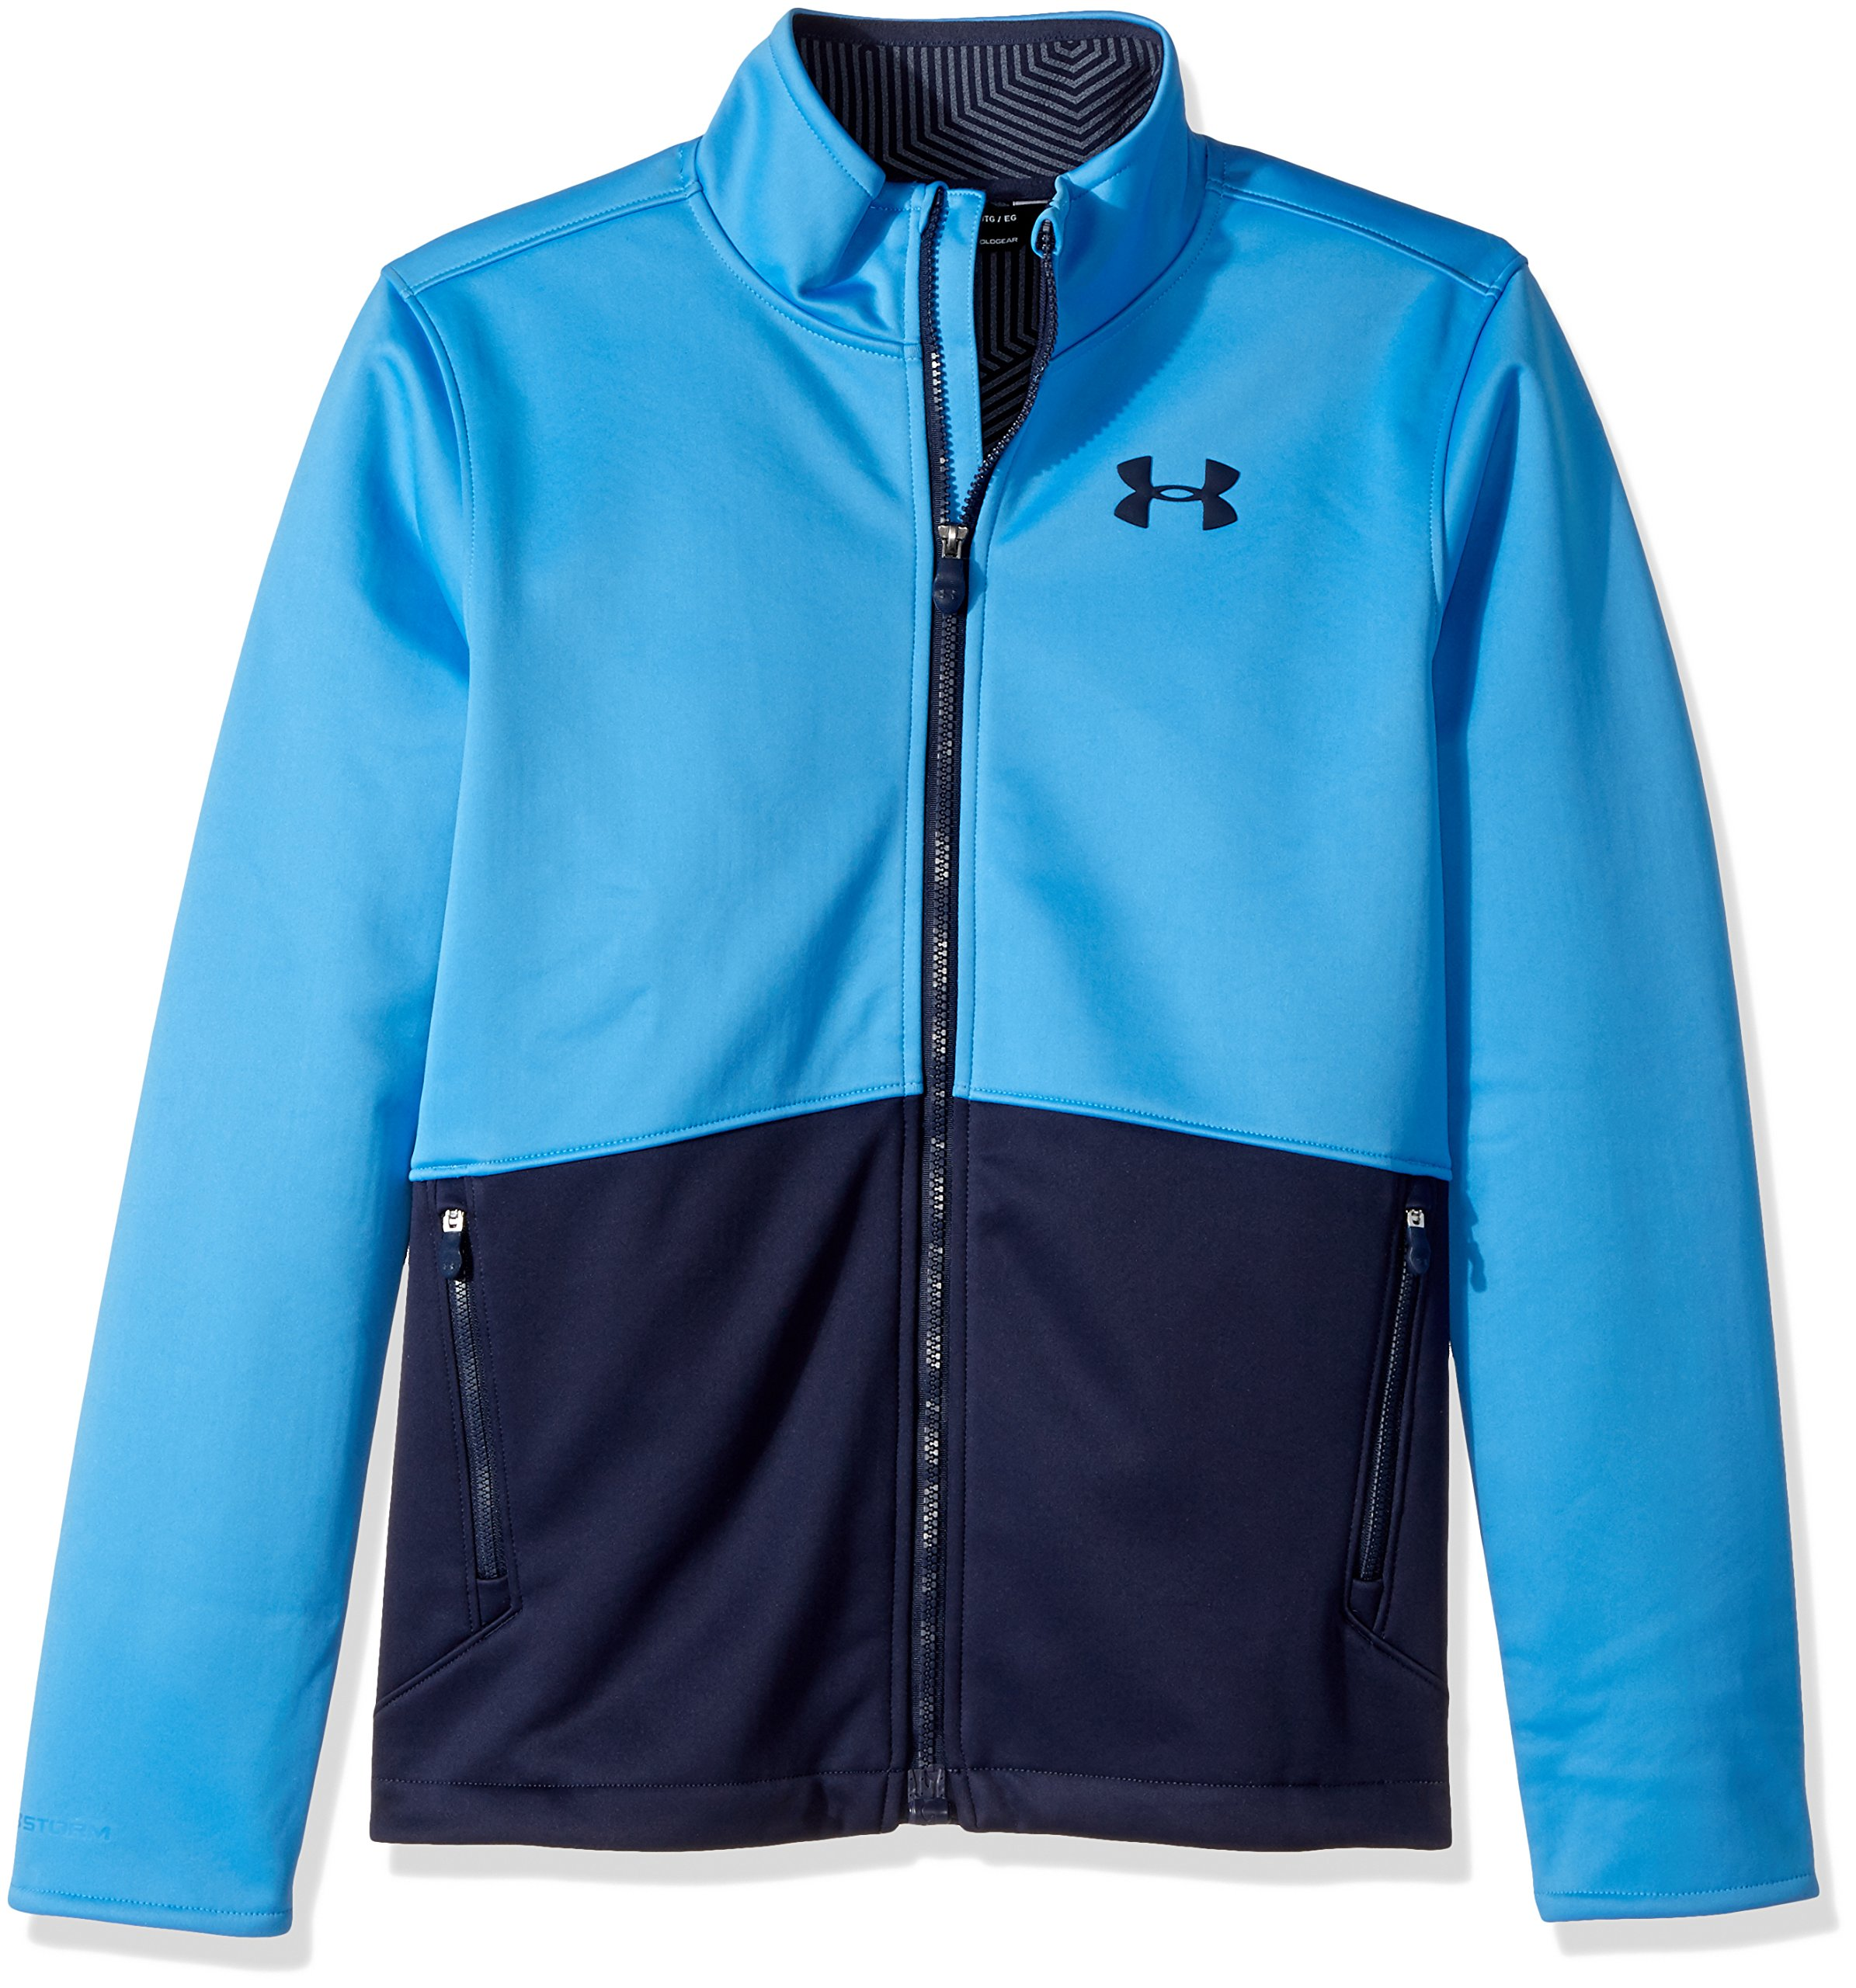 Under Armour Outerwear Youth Boys Storm Softer Shell Jacket, Mako Blue/Midnight Navy, X-Large